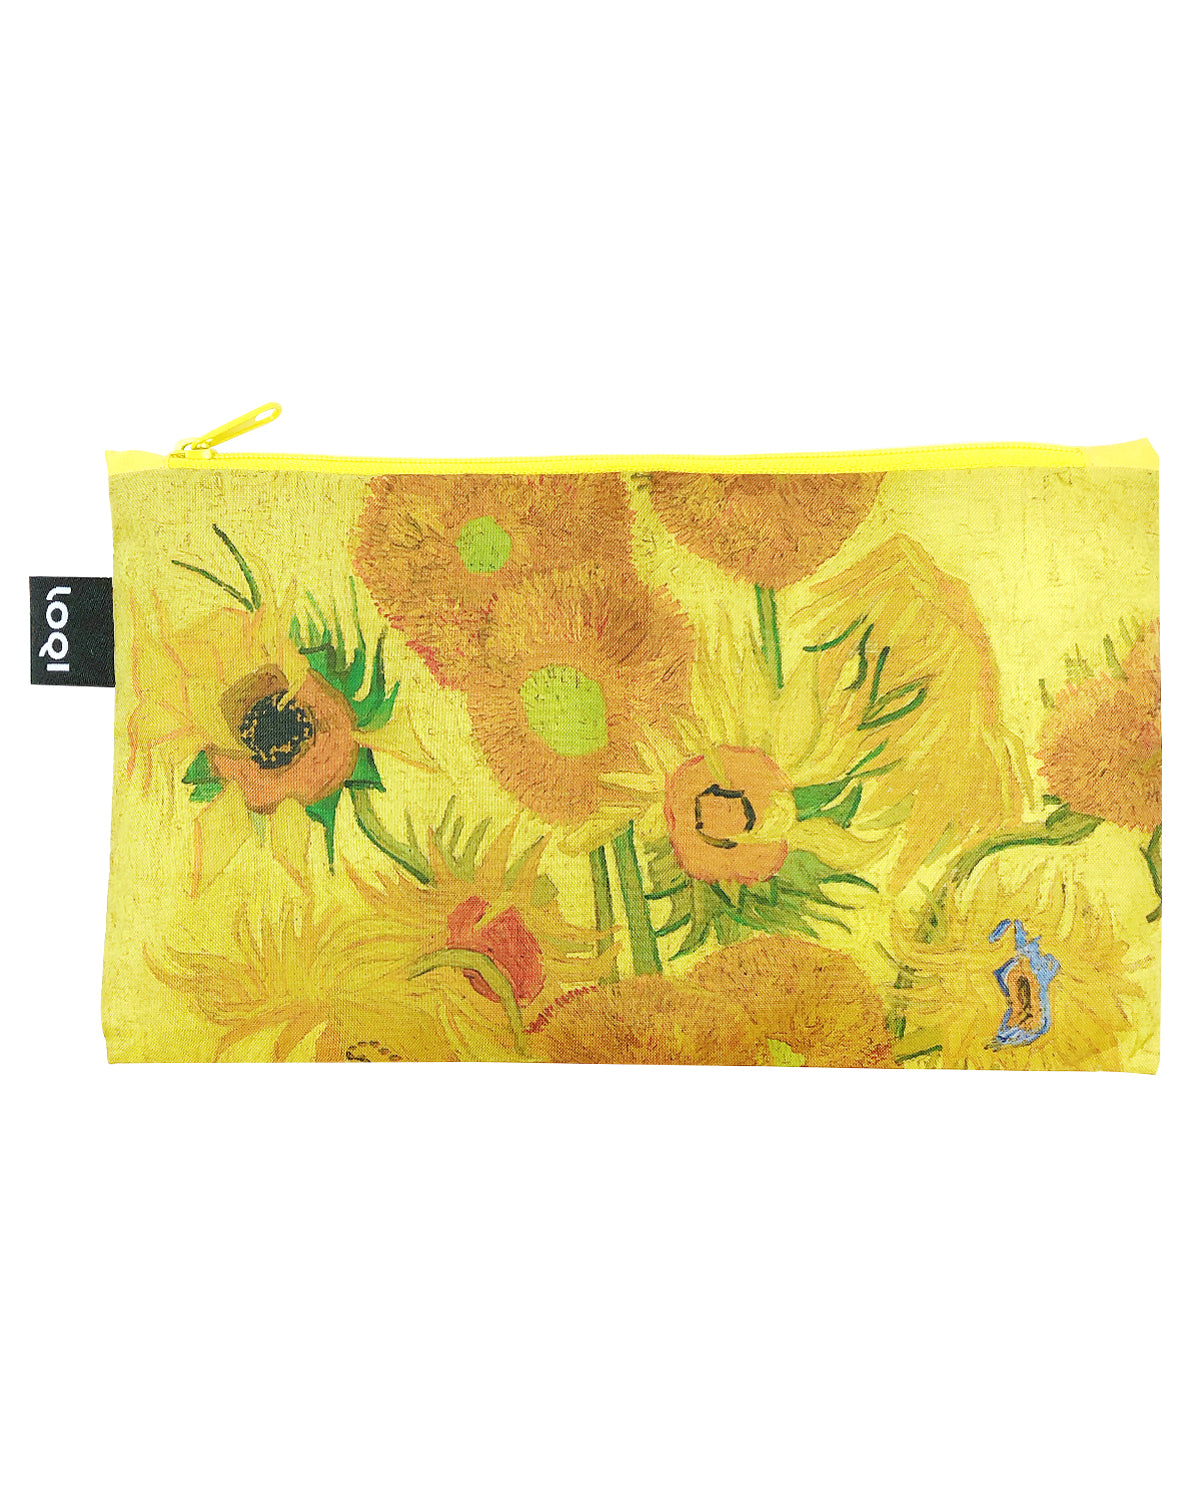 LOQI Museum Zip Pockets (Set of 5) Irisches Gedicht, Composition, Chinese Décor, Water Lilies, Sunflowers